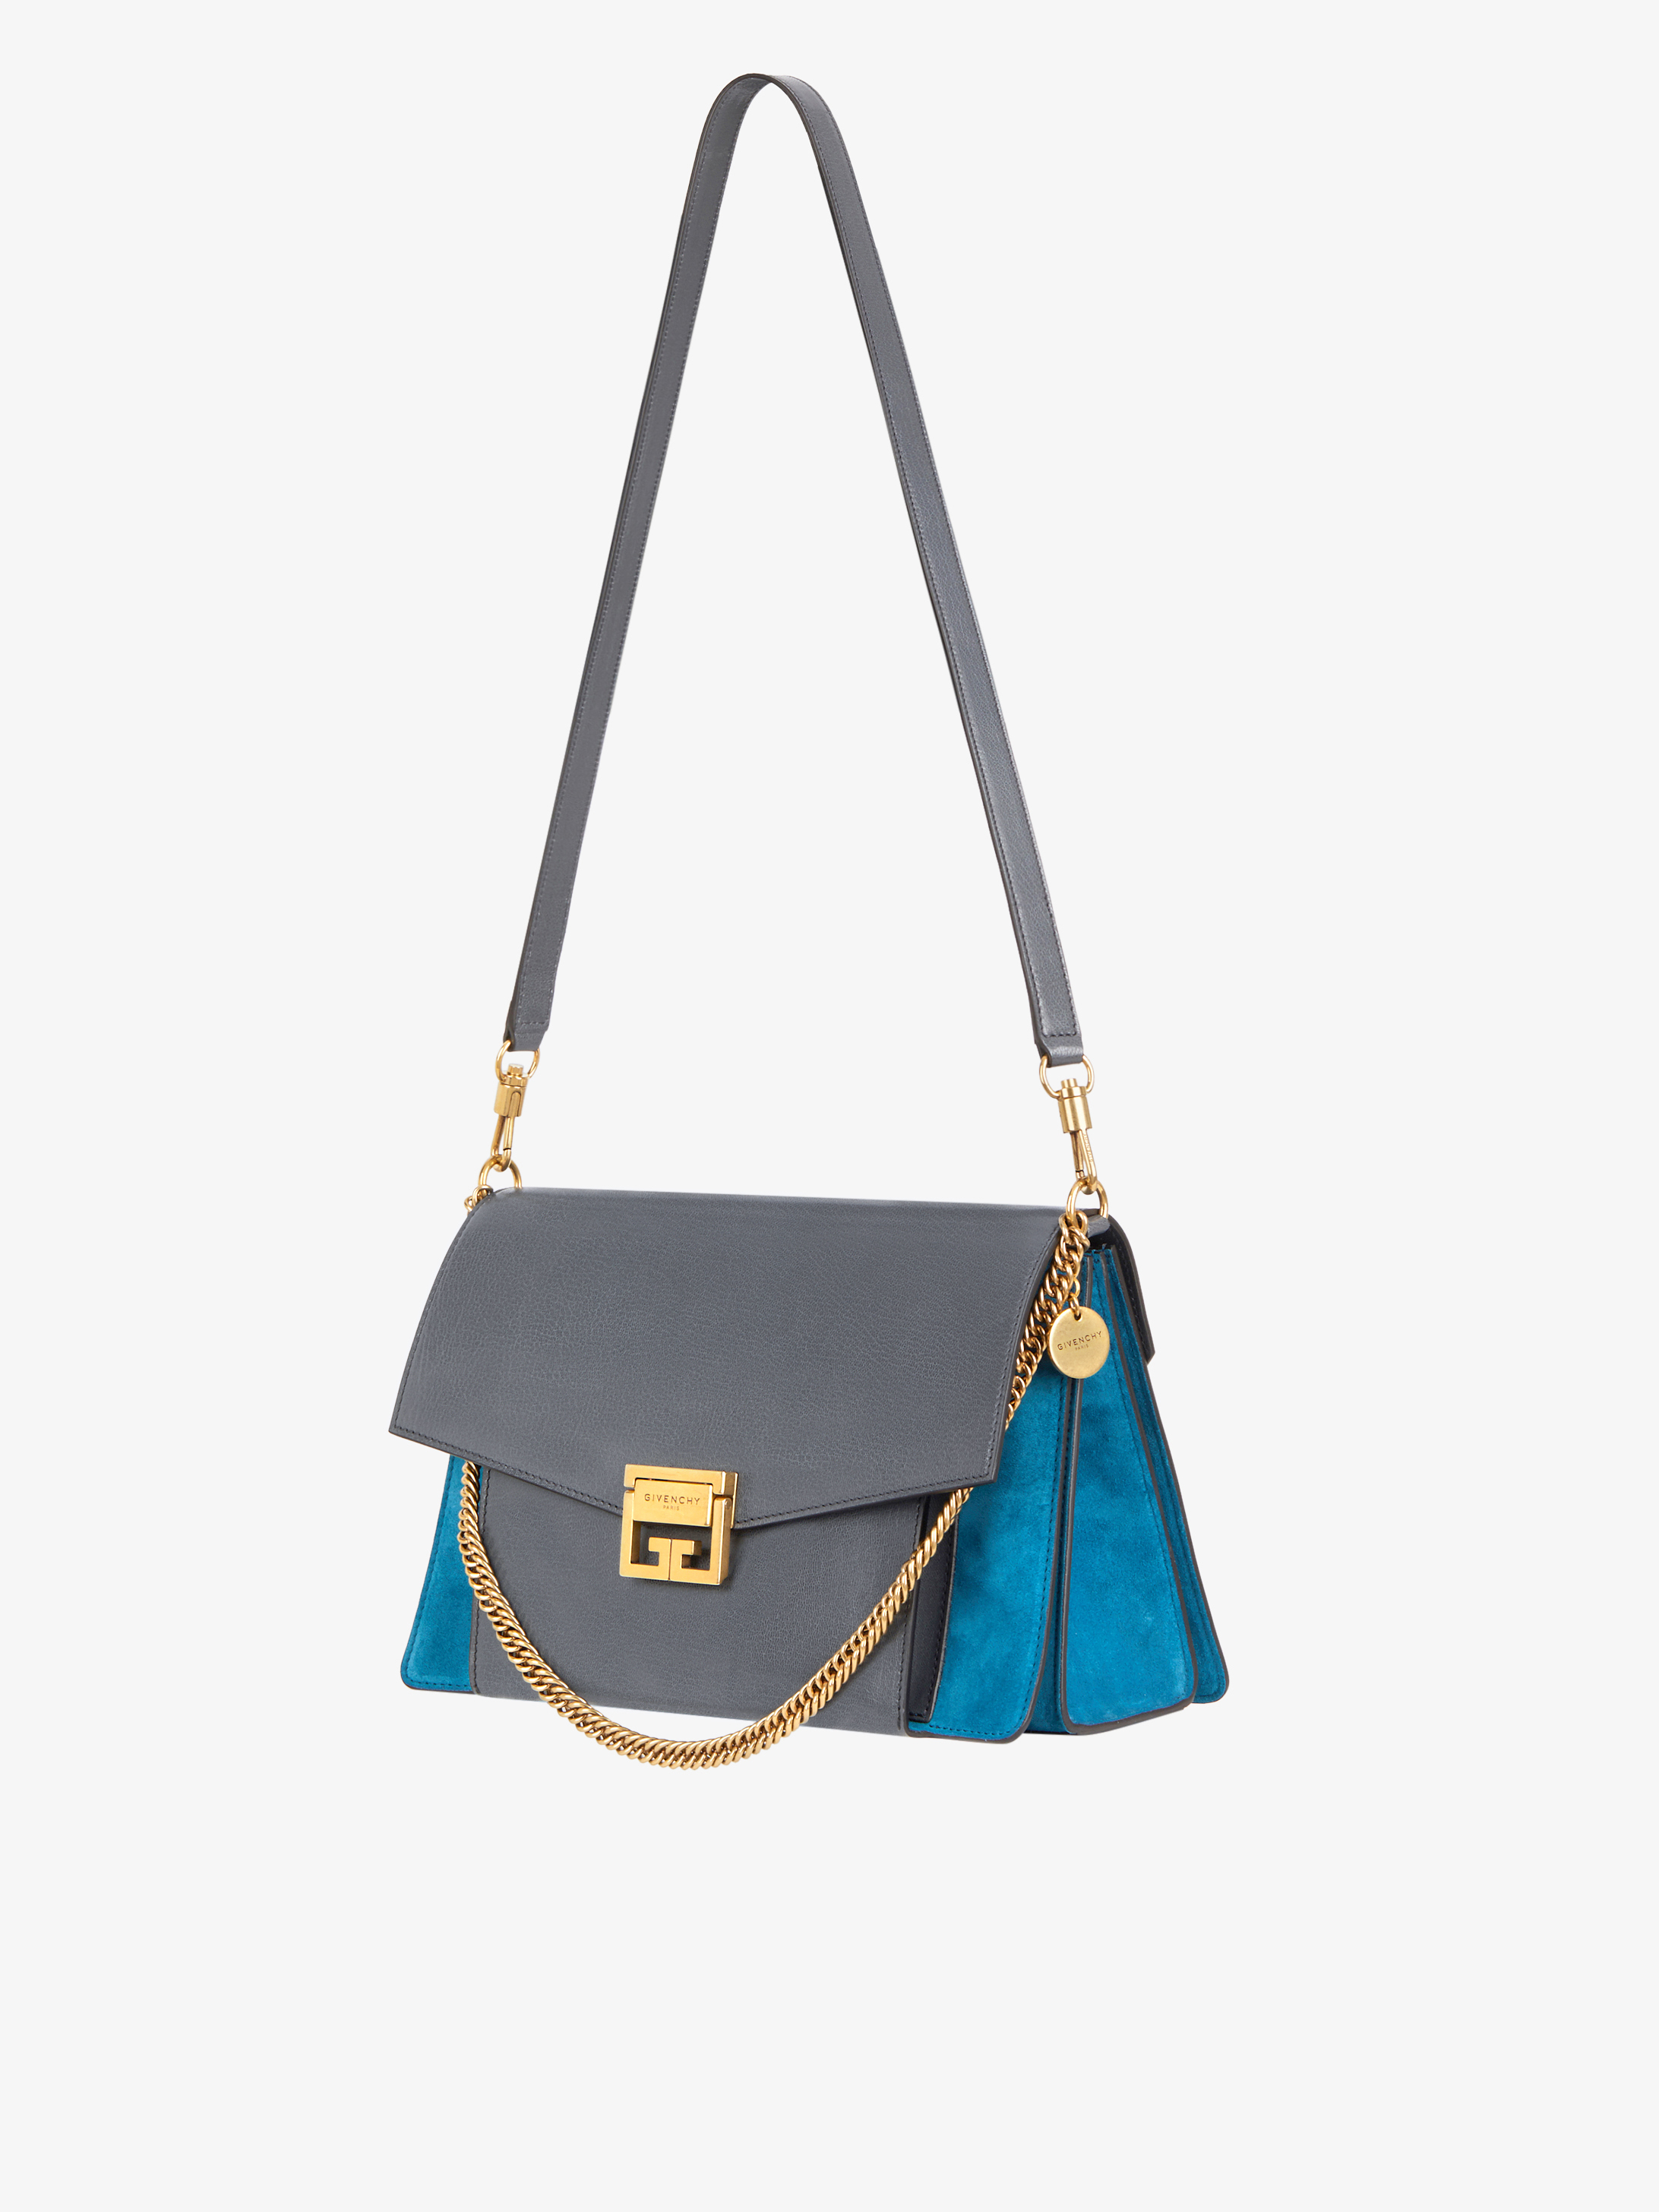 Medium GV3 bag in leather and suede